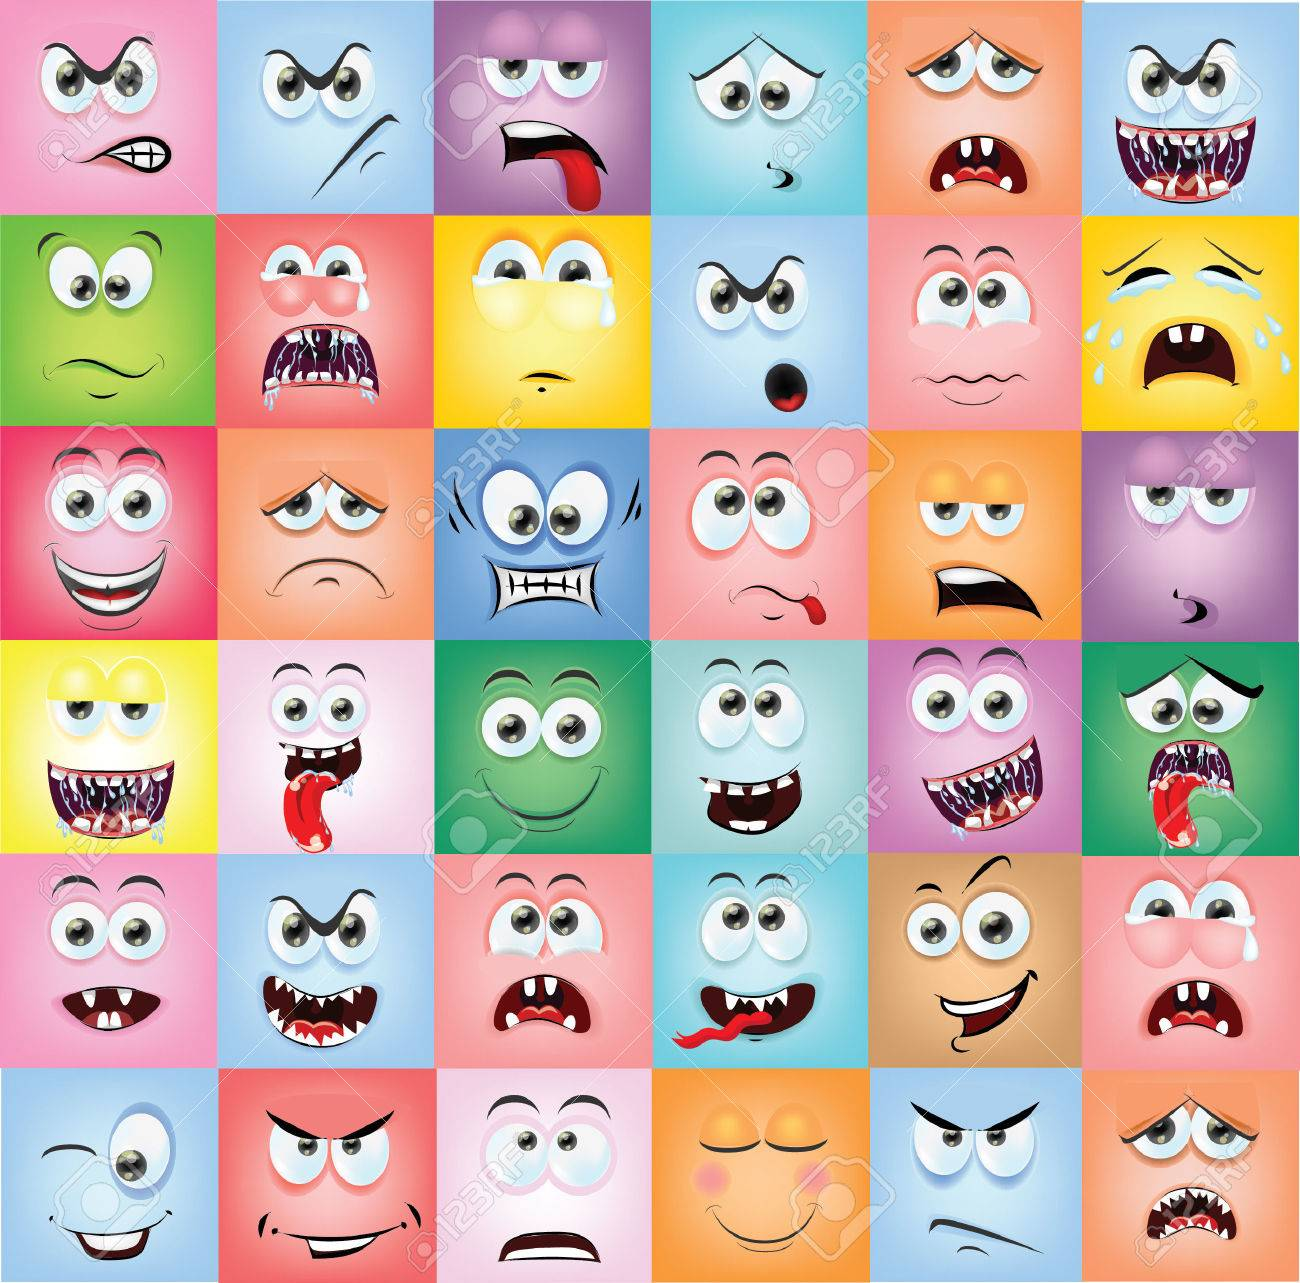 Cartoon faces with emotions - 33242232